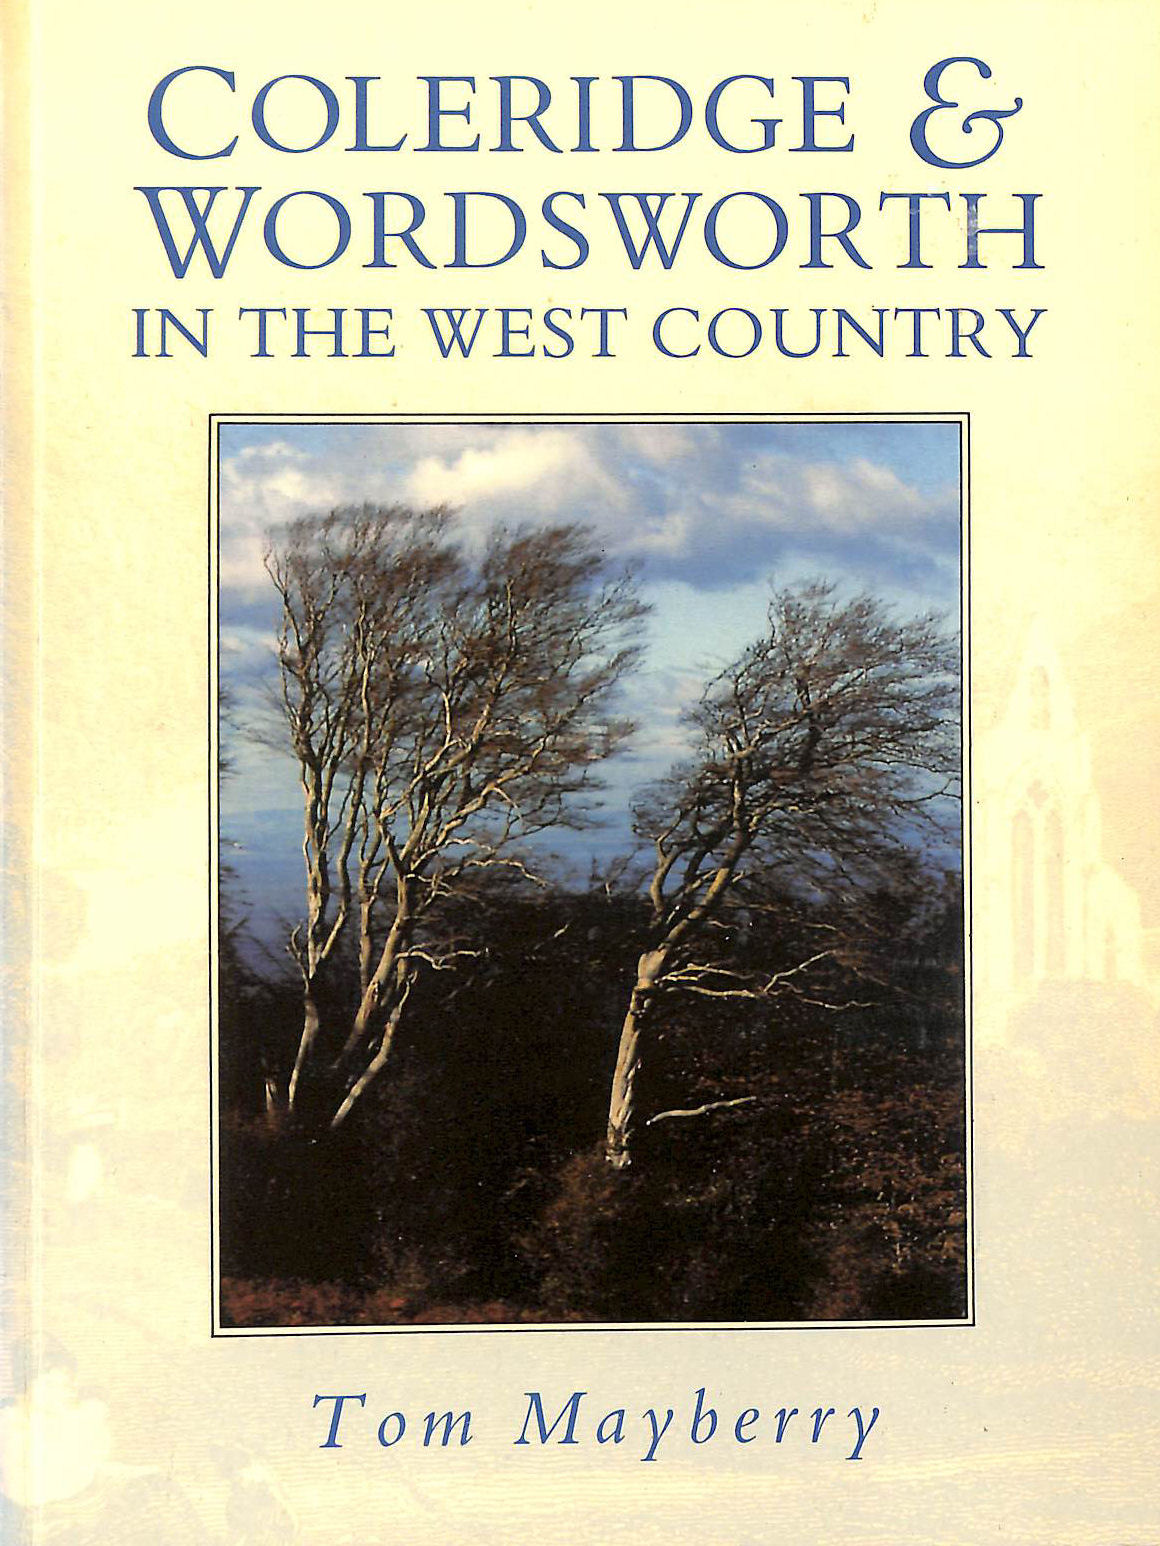 MAYBERRY, TOM - Coleridge and Wordsworth in the West Country